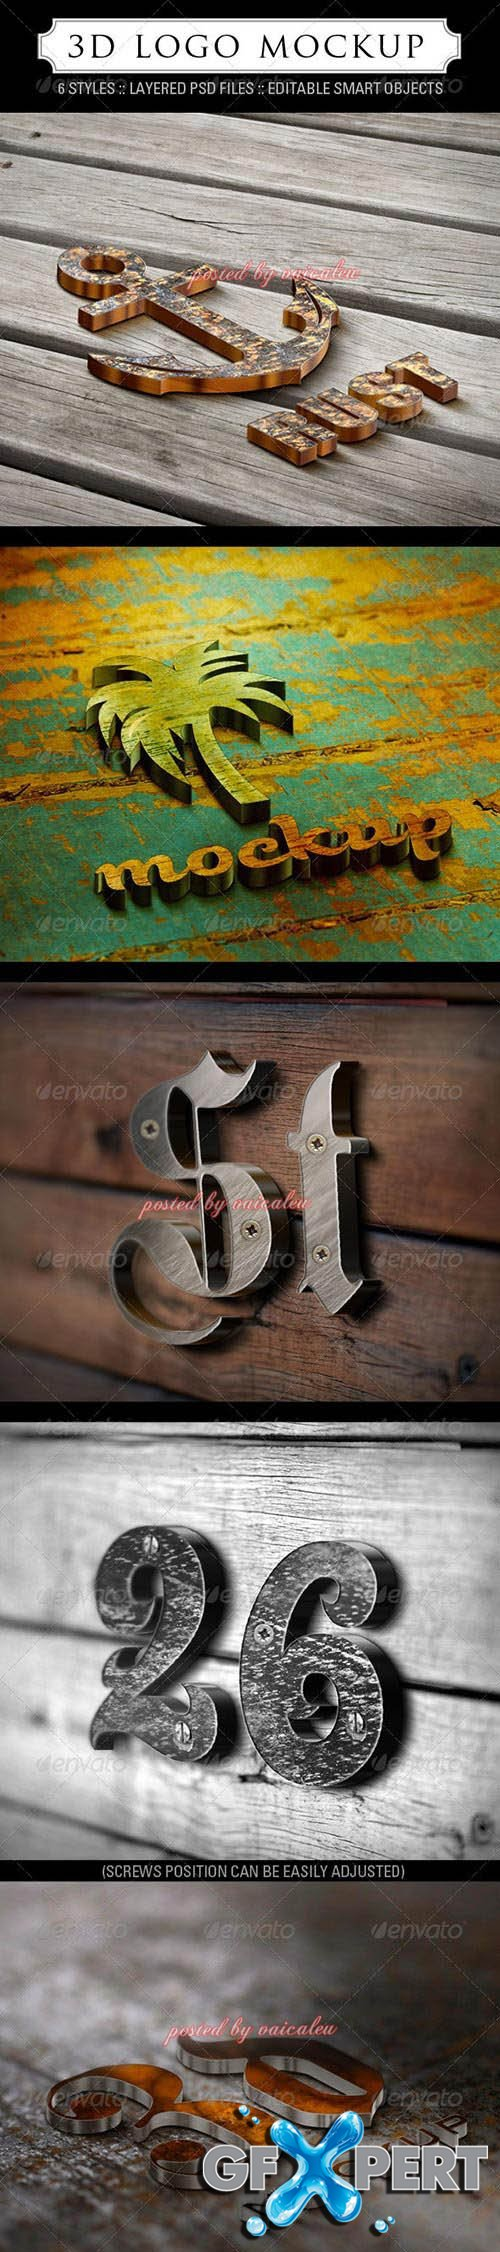 Graphicriver - 3D Logo Mockup - 6 Styles 1